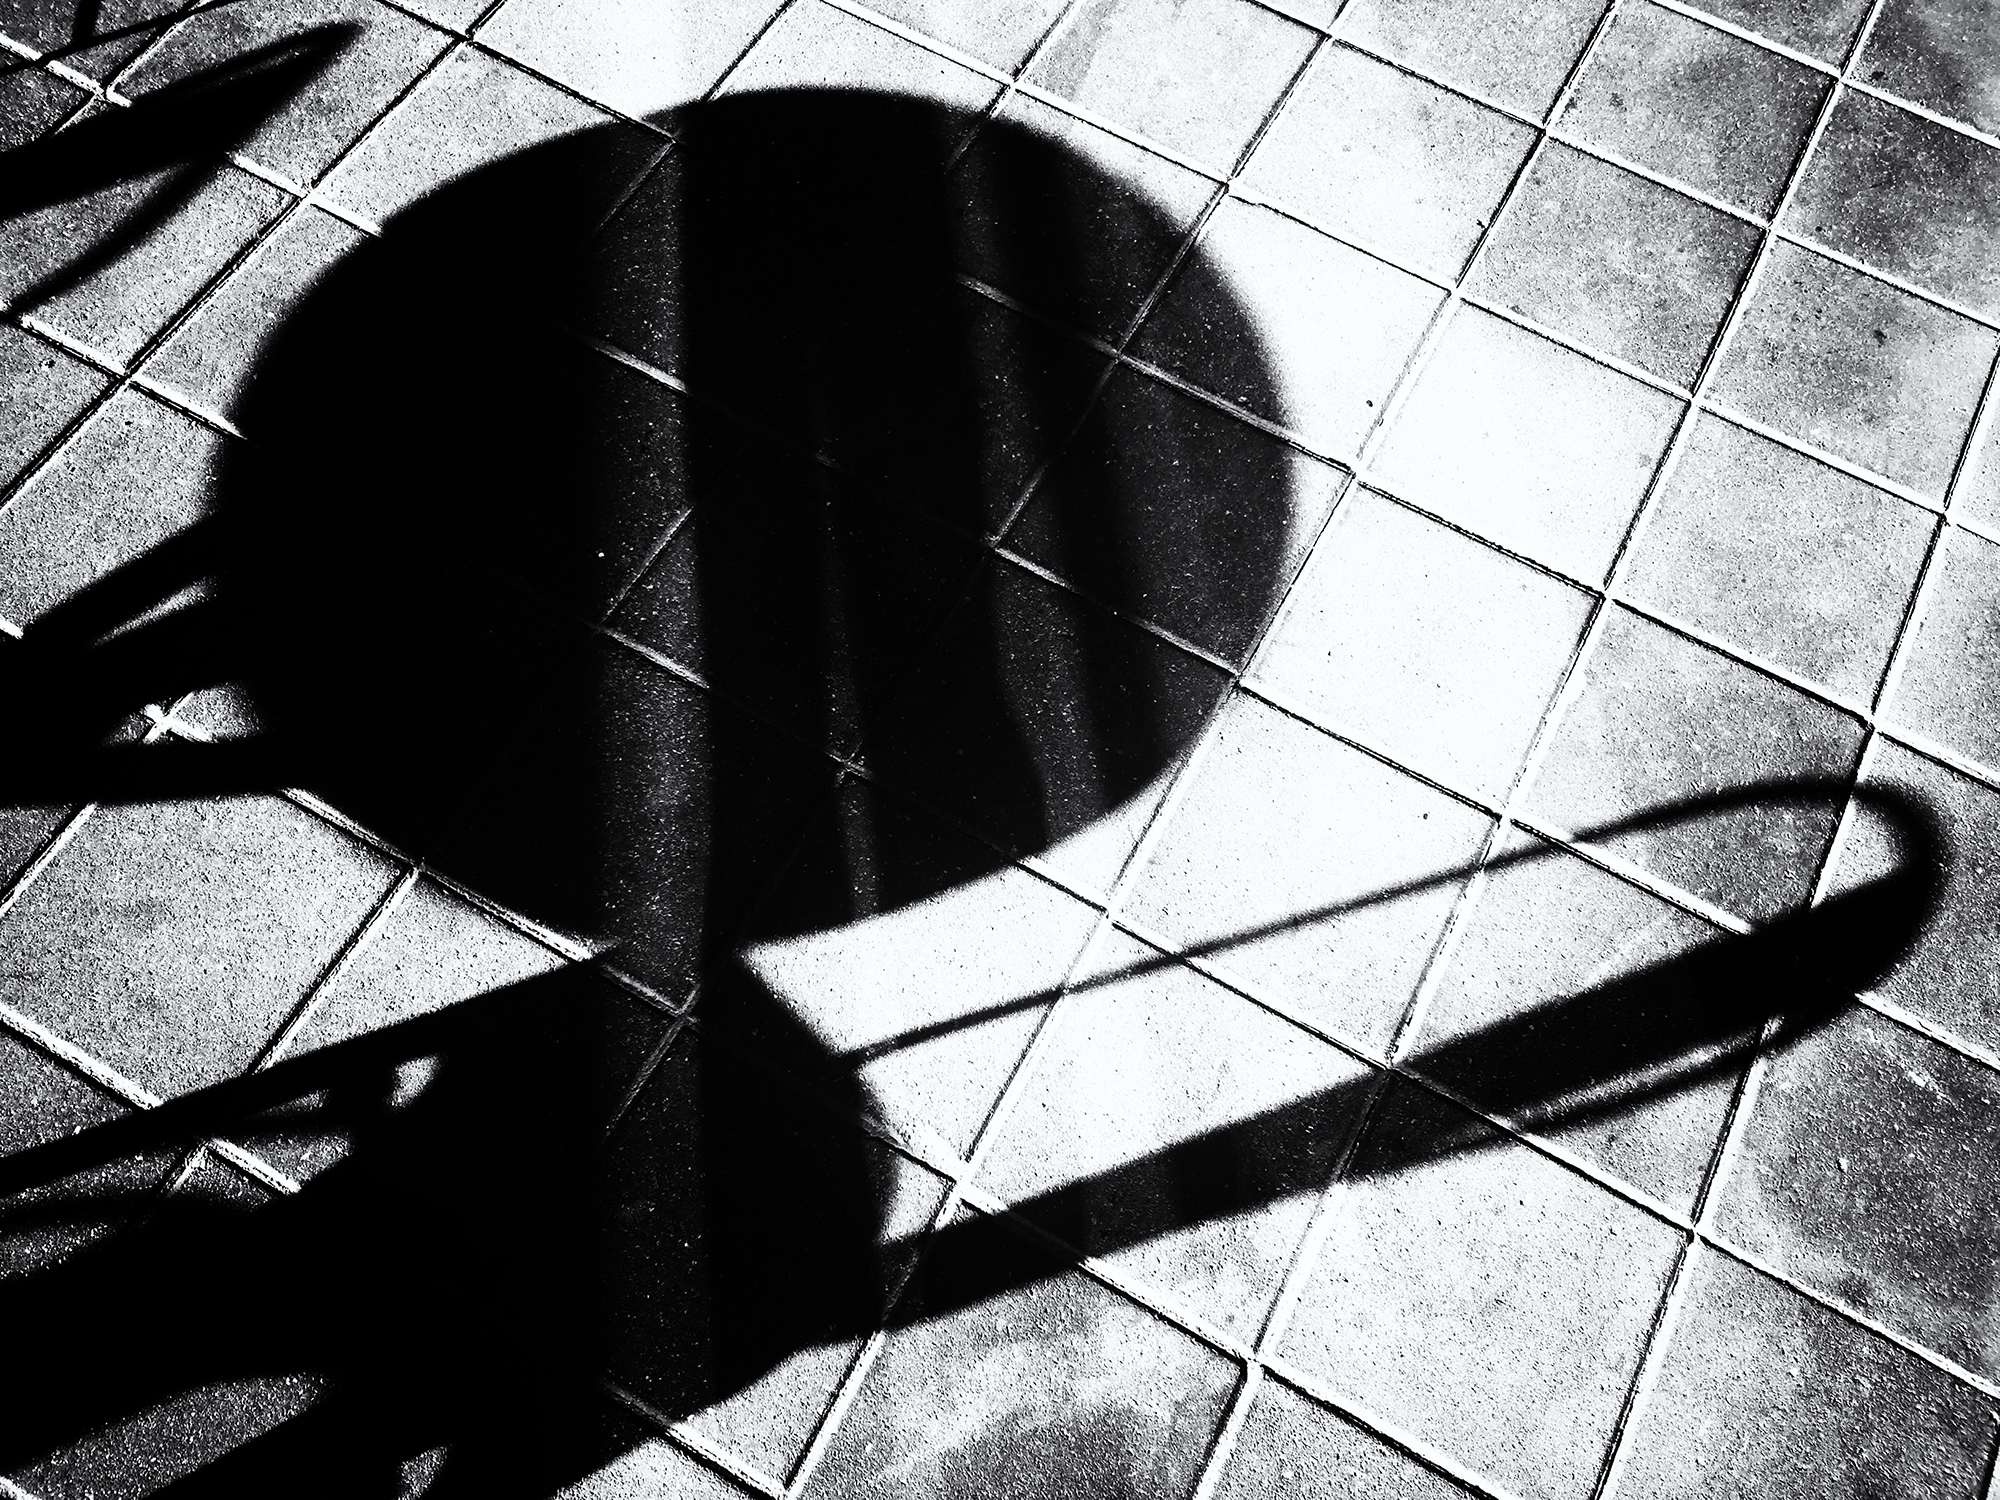 Mall Shadows, #4. Boulder, Colorado, 2016